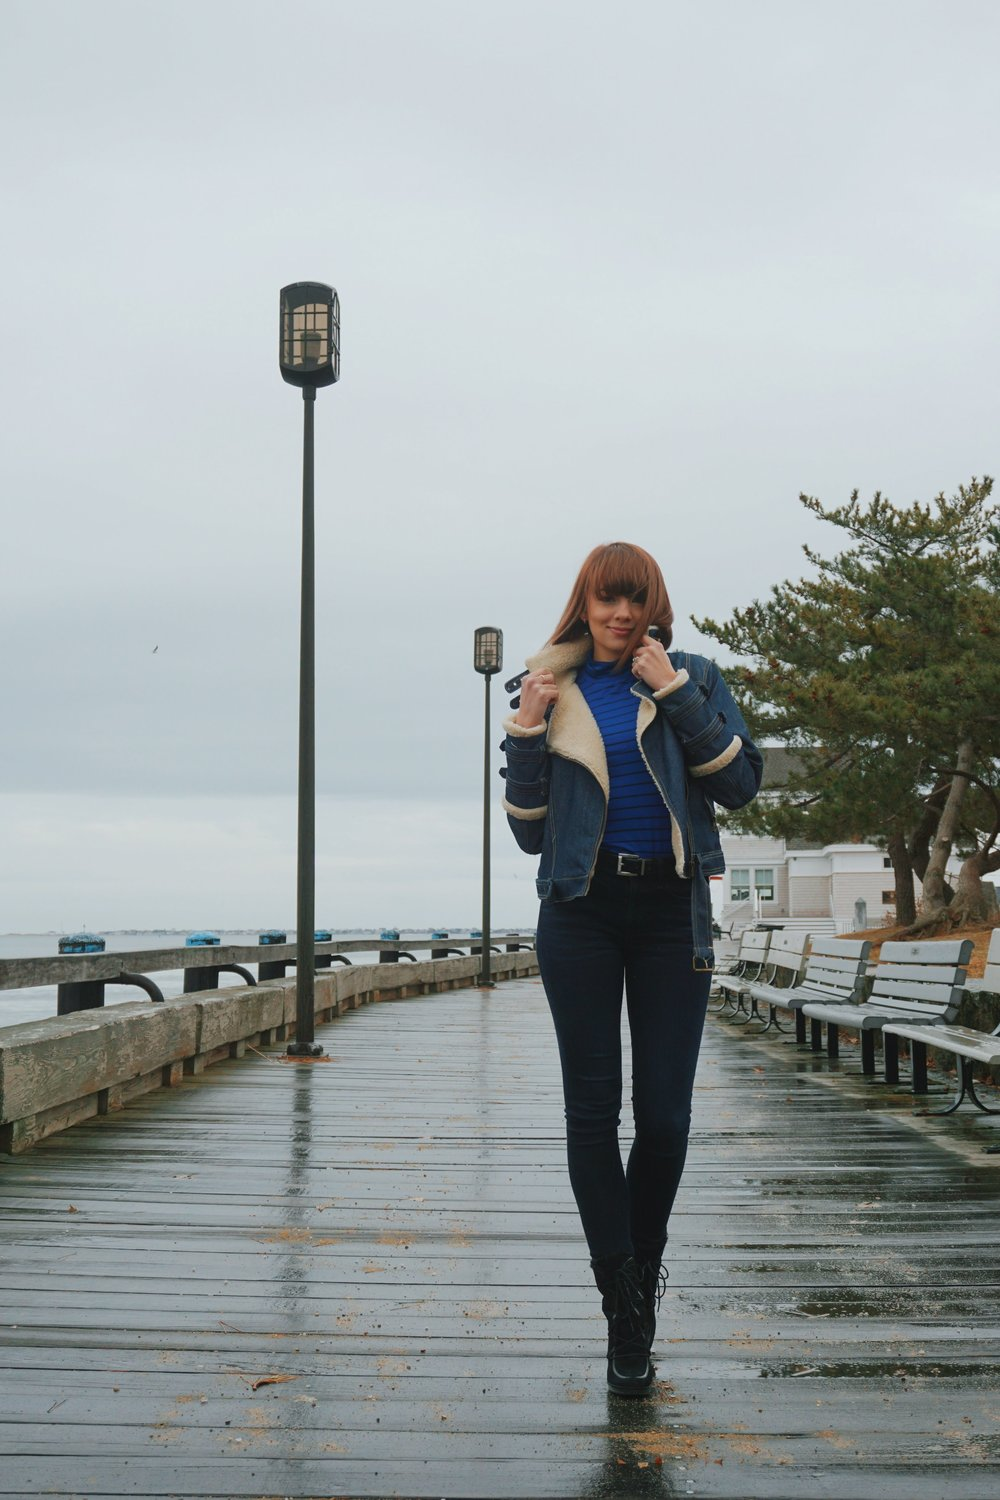 A fashion blogger wearing an all denim outfit, and walking down the boardwalk near the ocean.